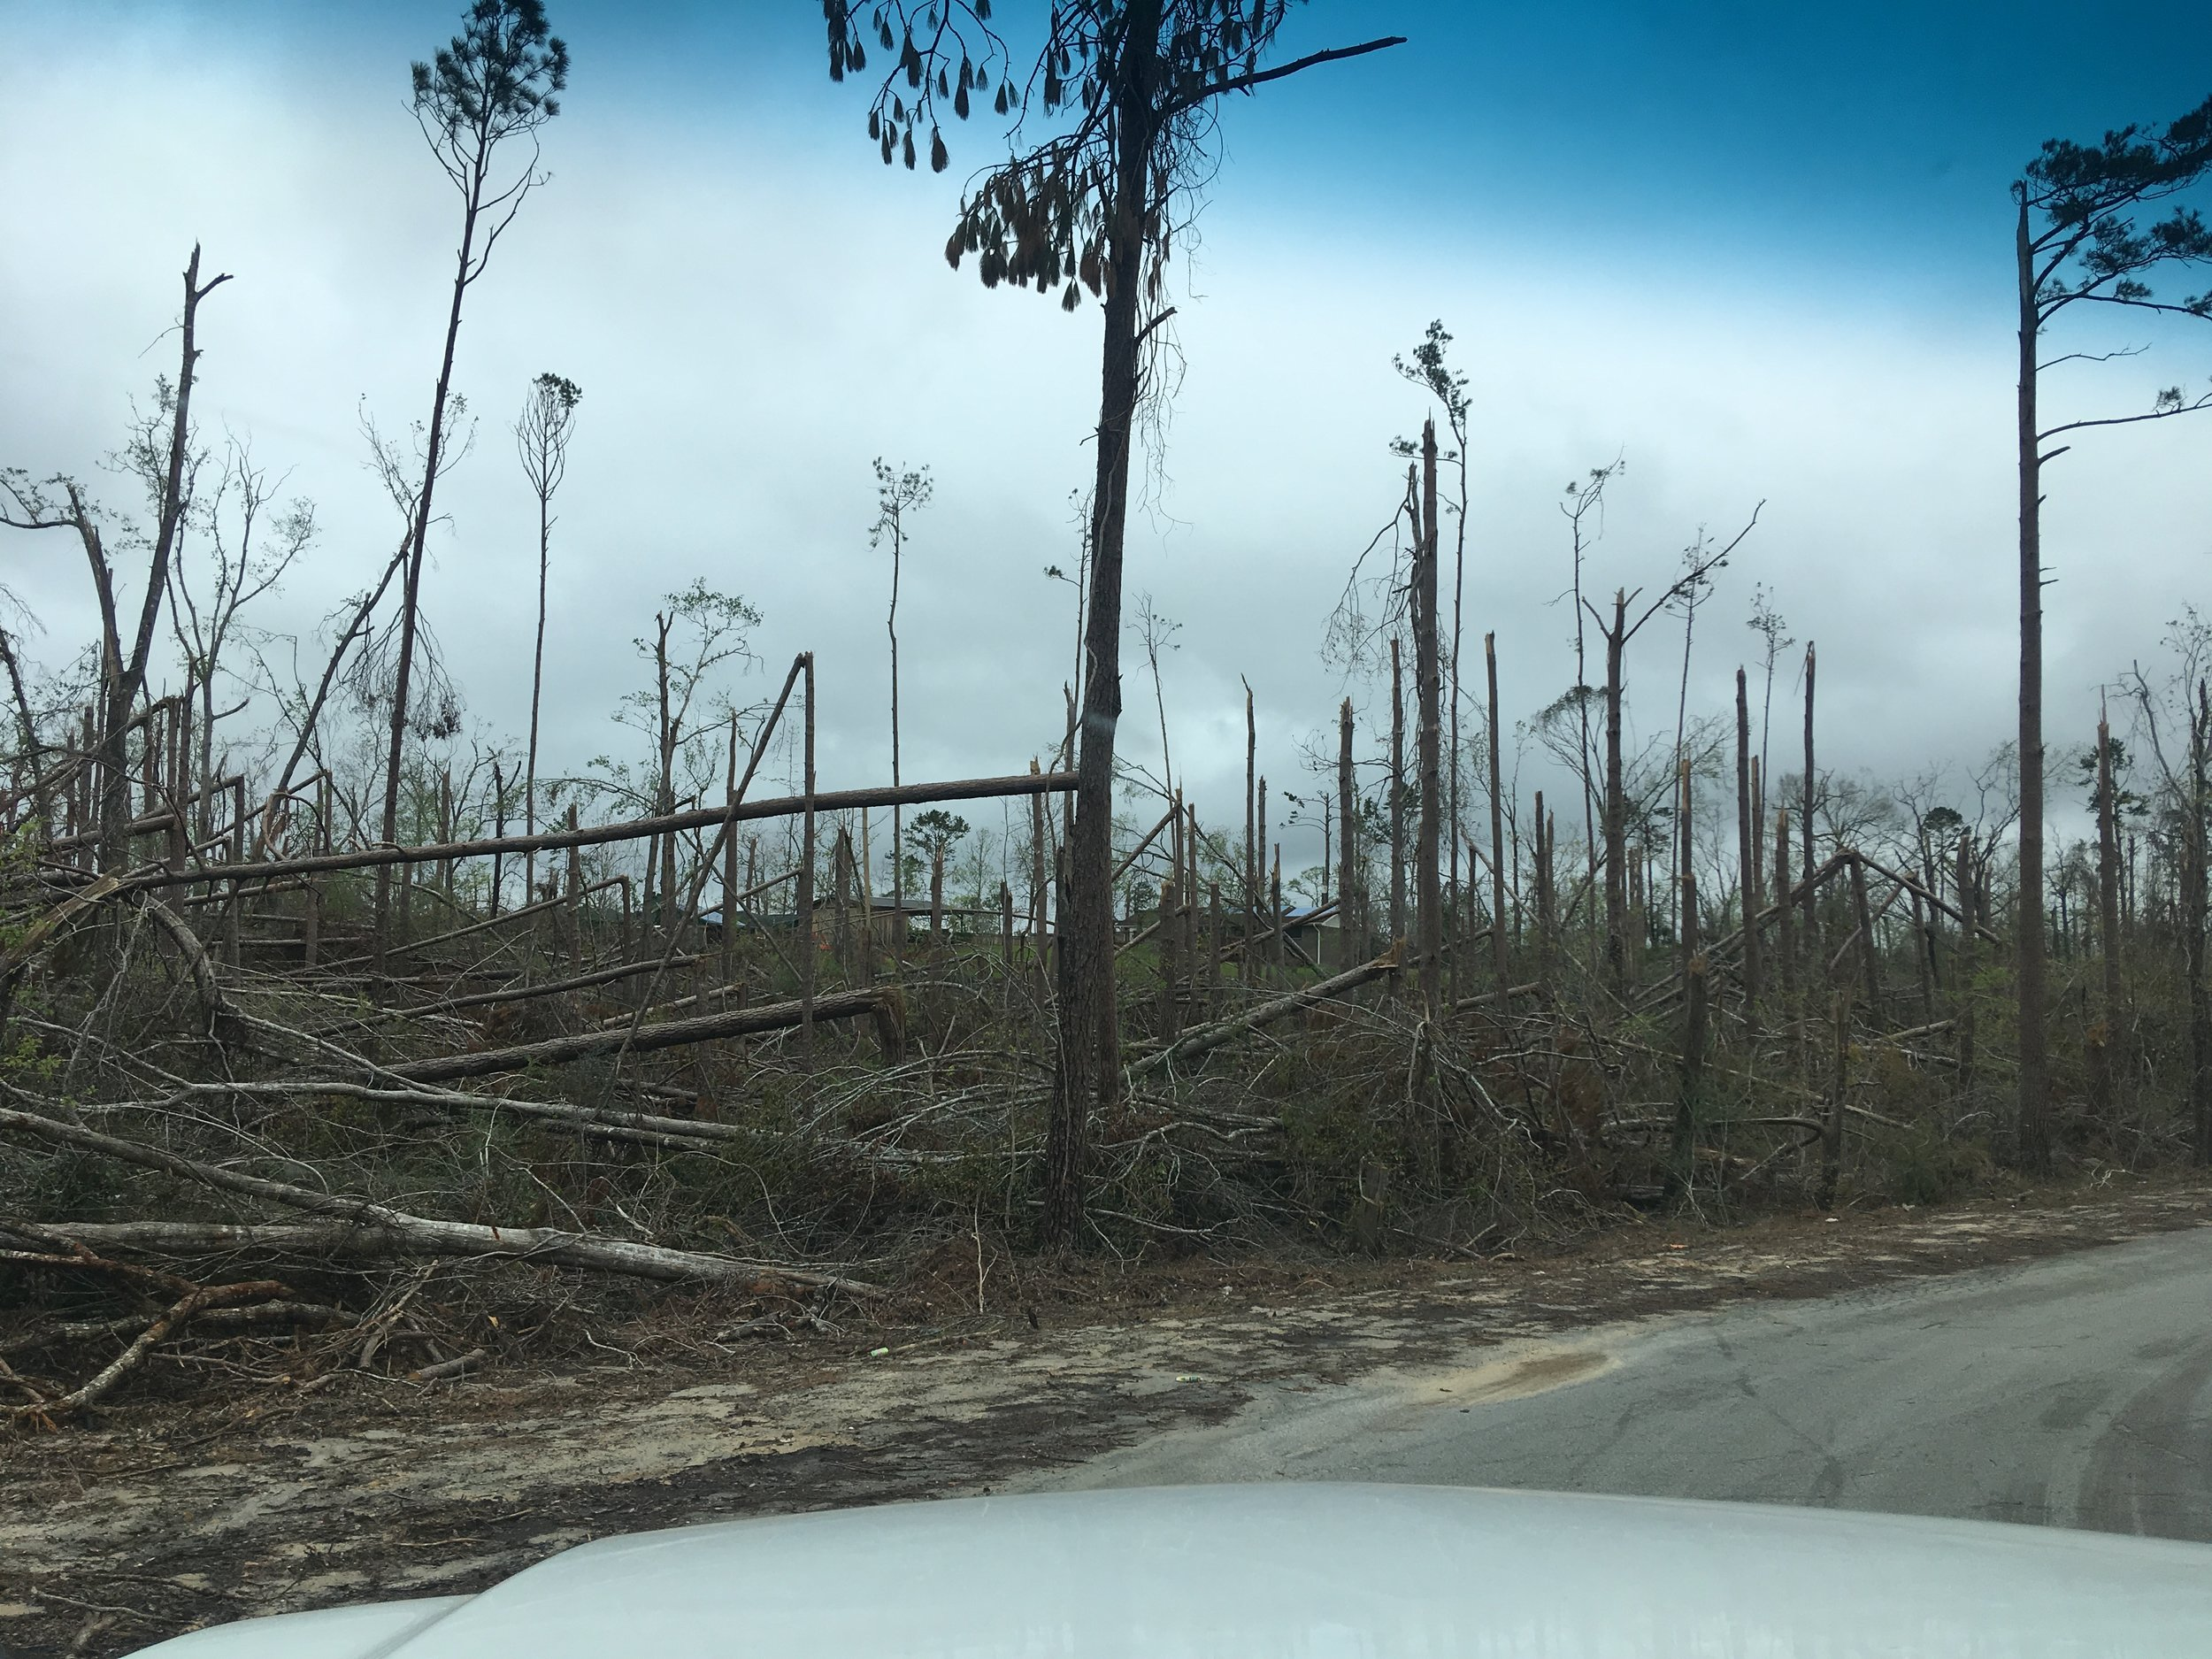 Another view of a forest devastated by Hurricane Michael.